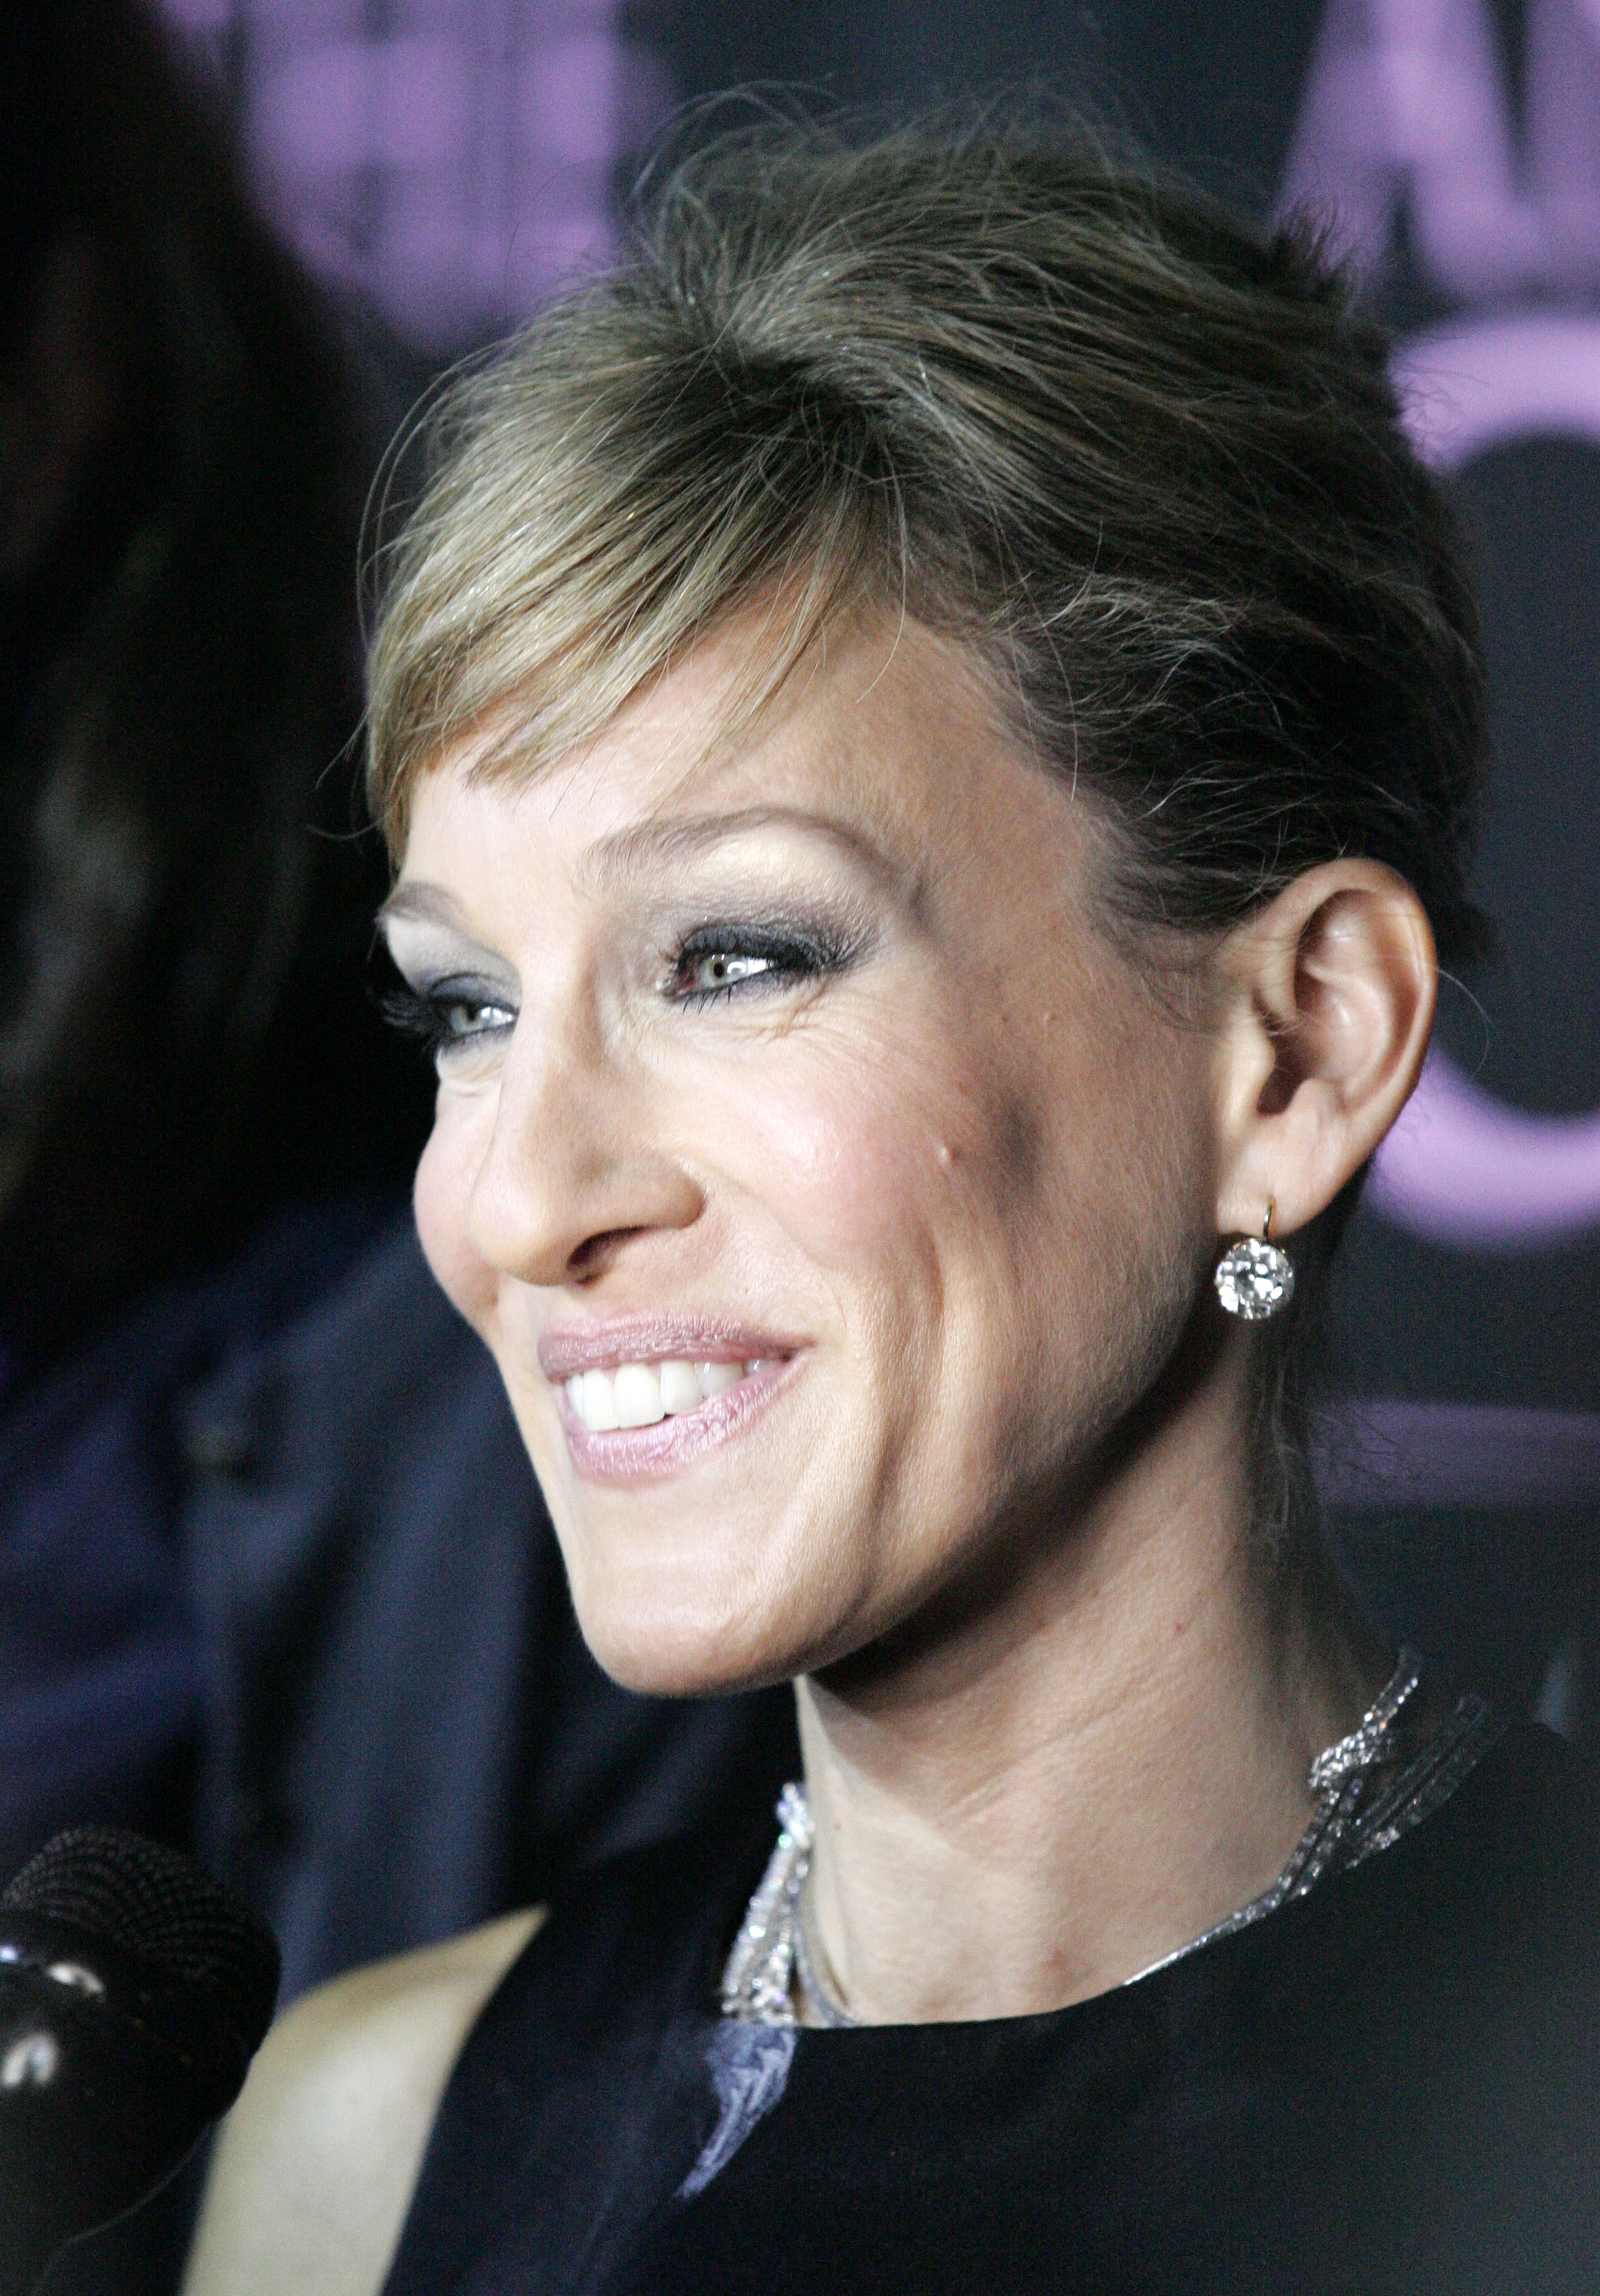 03932_Celebutopia-Sarah_Jessica_Parker-Sex_and_the_City_The_Movie_DVD_launch_in_New_York_City-06_122_123lo.jpg